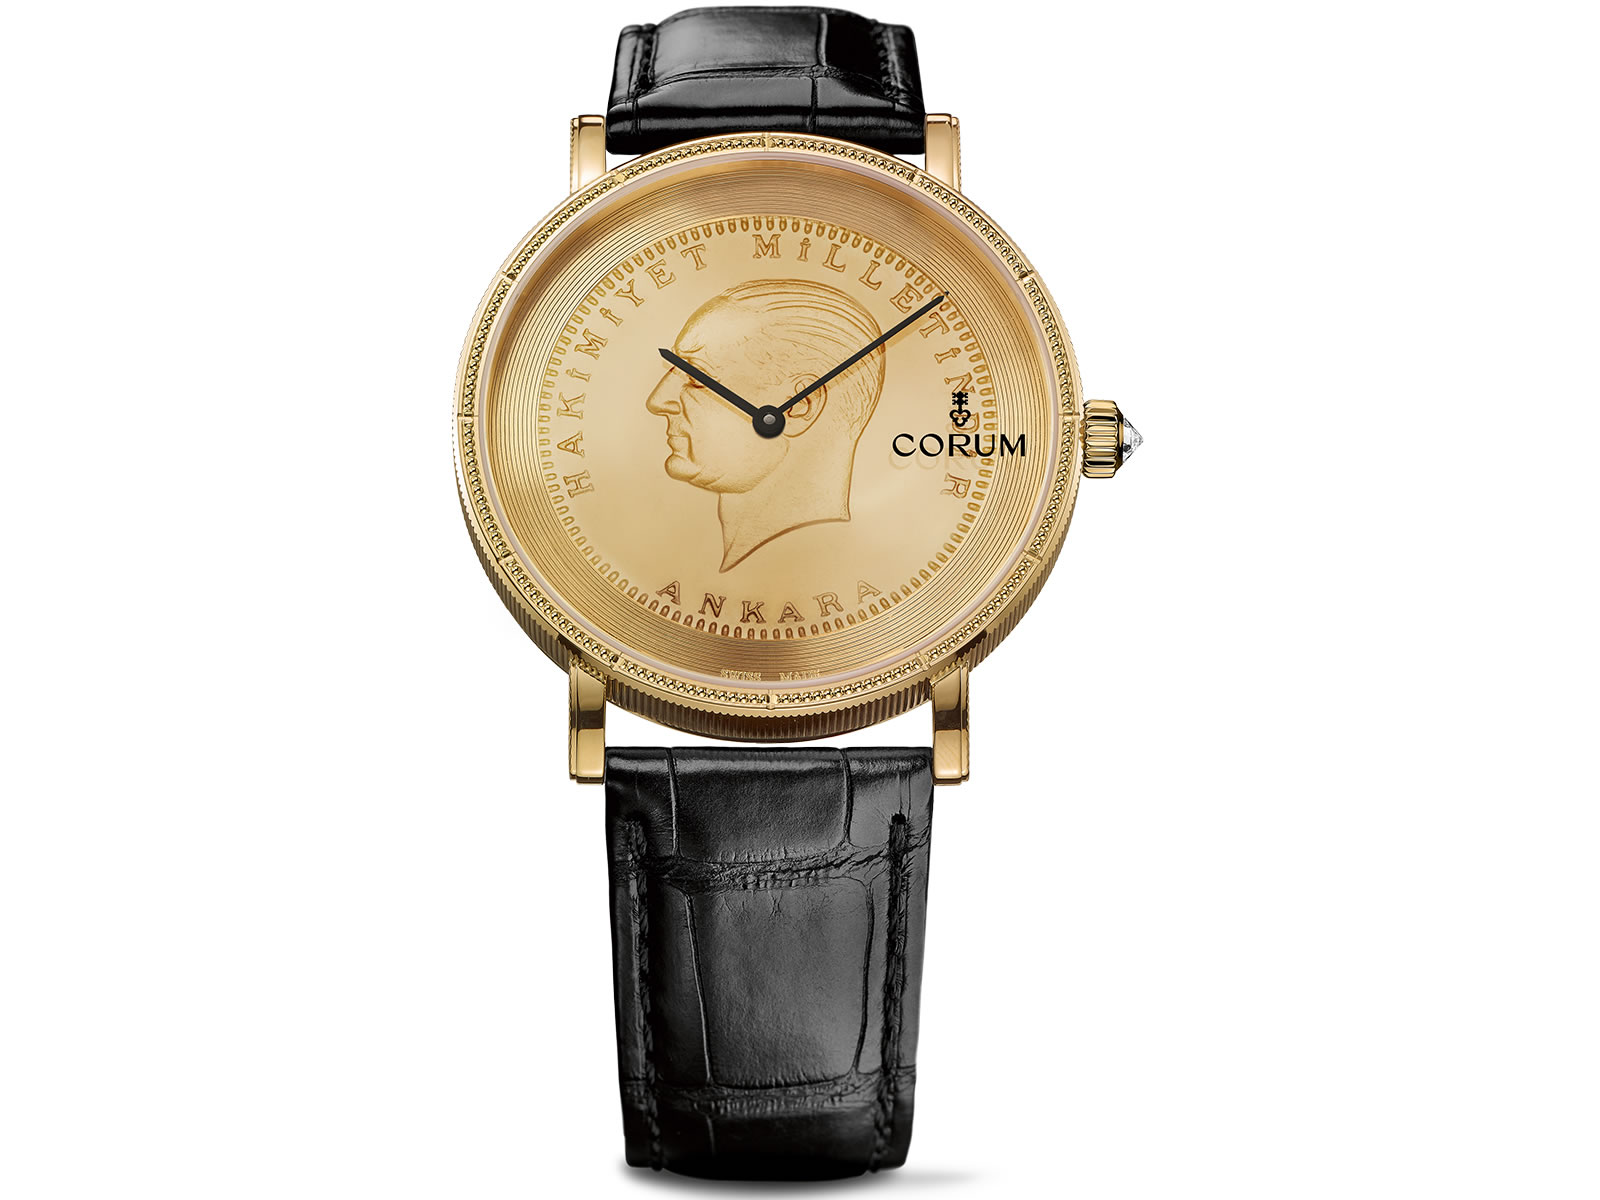 corum-heritage-artisans-coin-watch-ata-limited-edition-4-.jpg